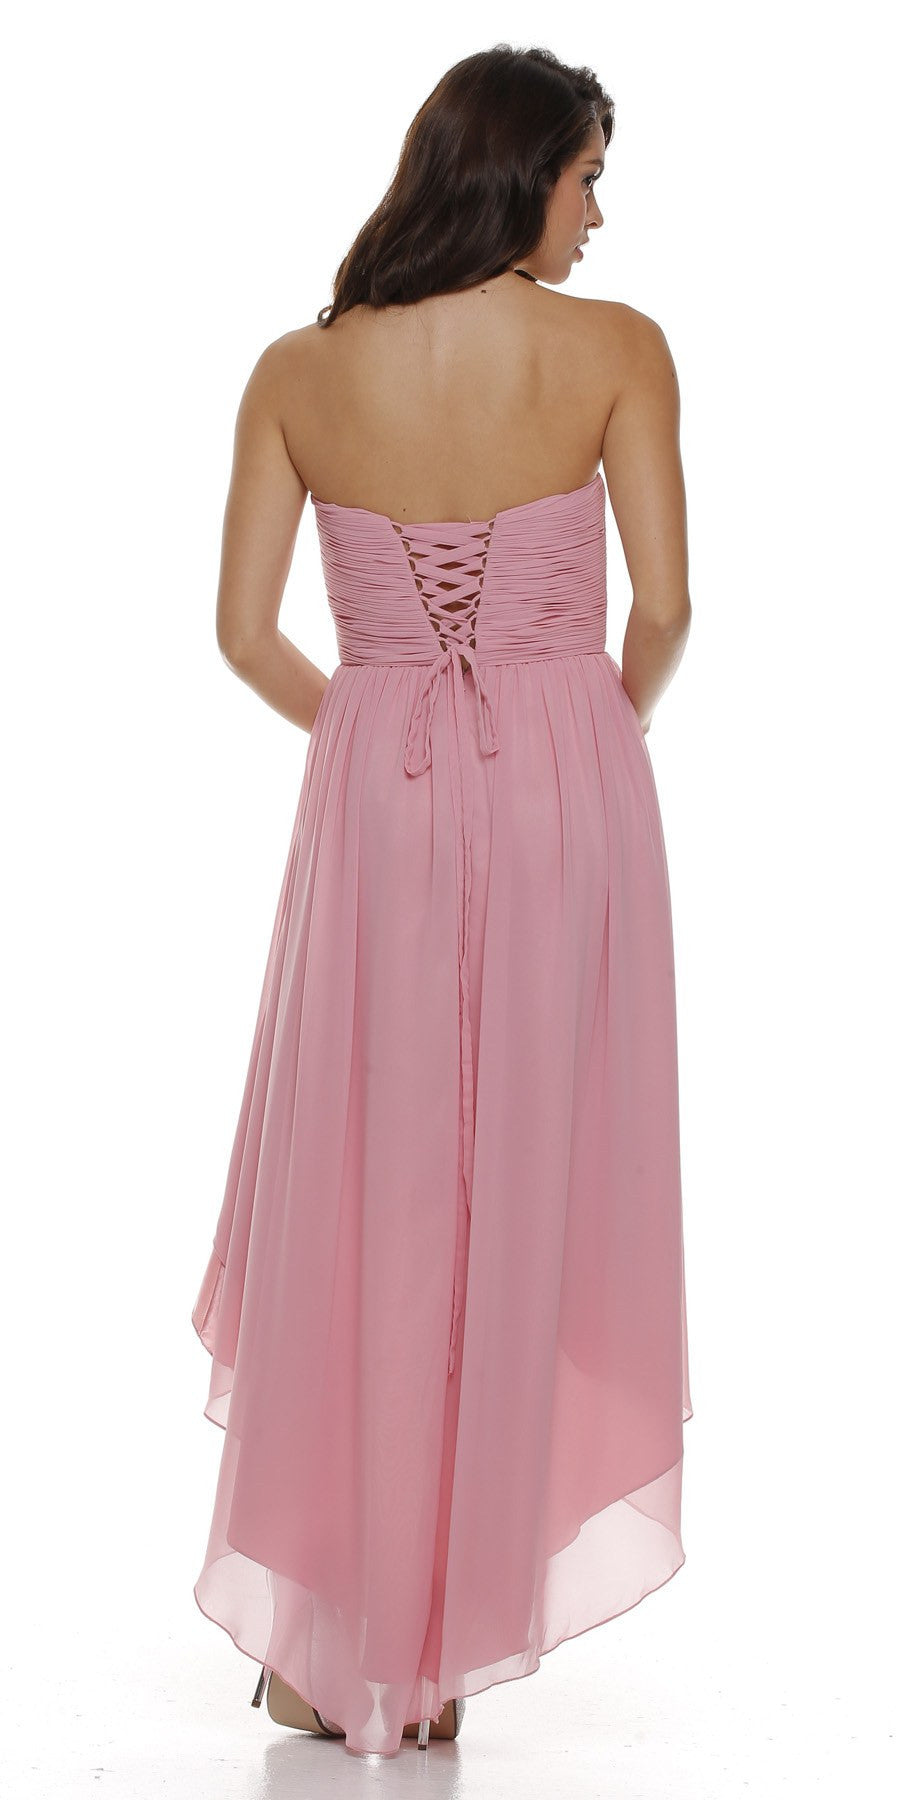 High Low Strapless Ruched Bodice Blush Bridesmaid Dress Back